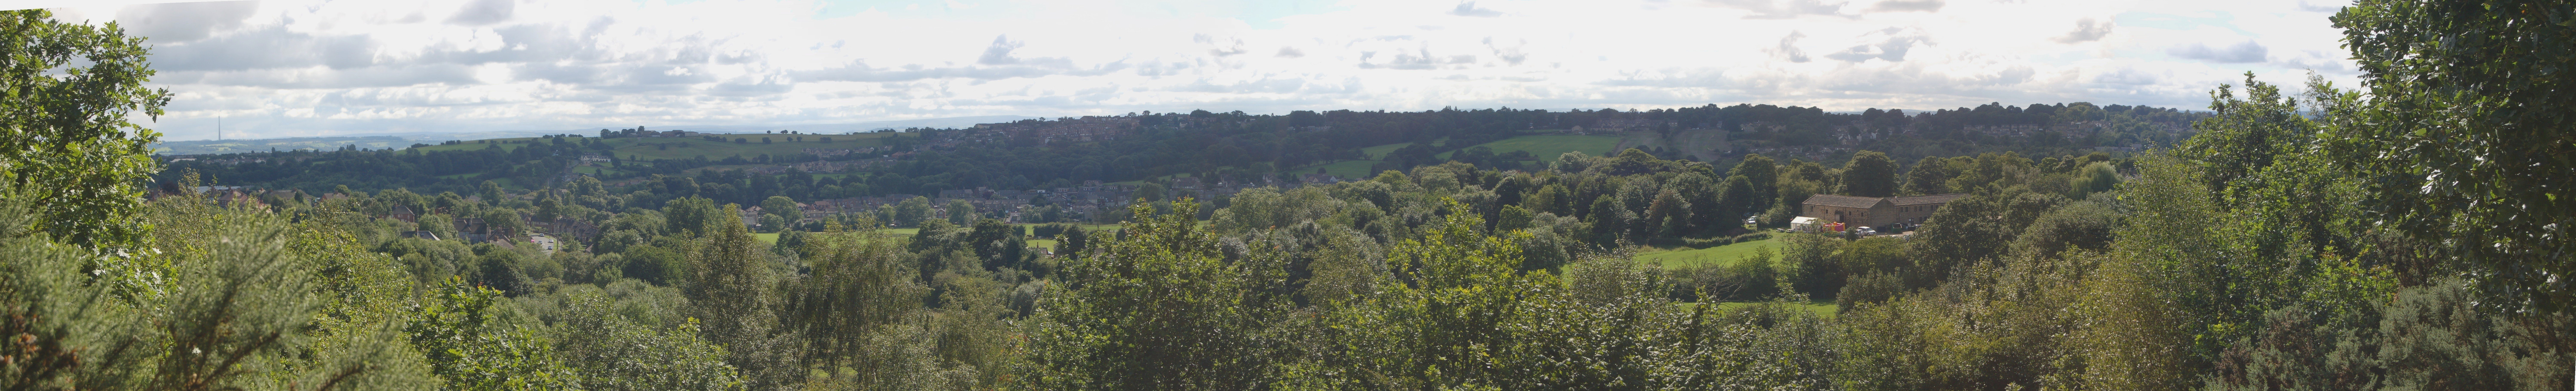 Panoramic view of oakwell country park